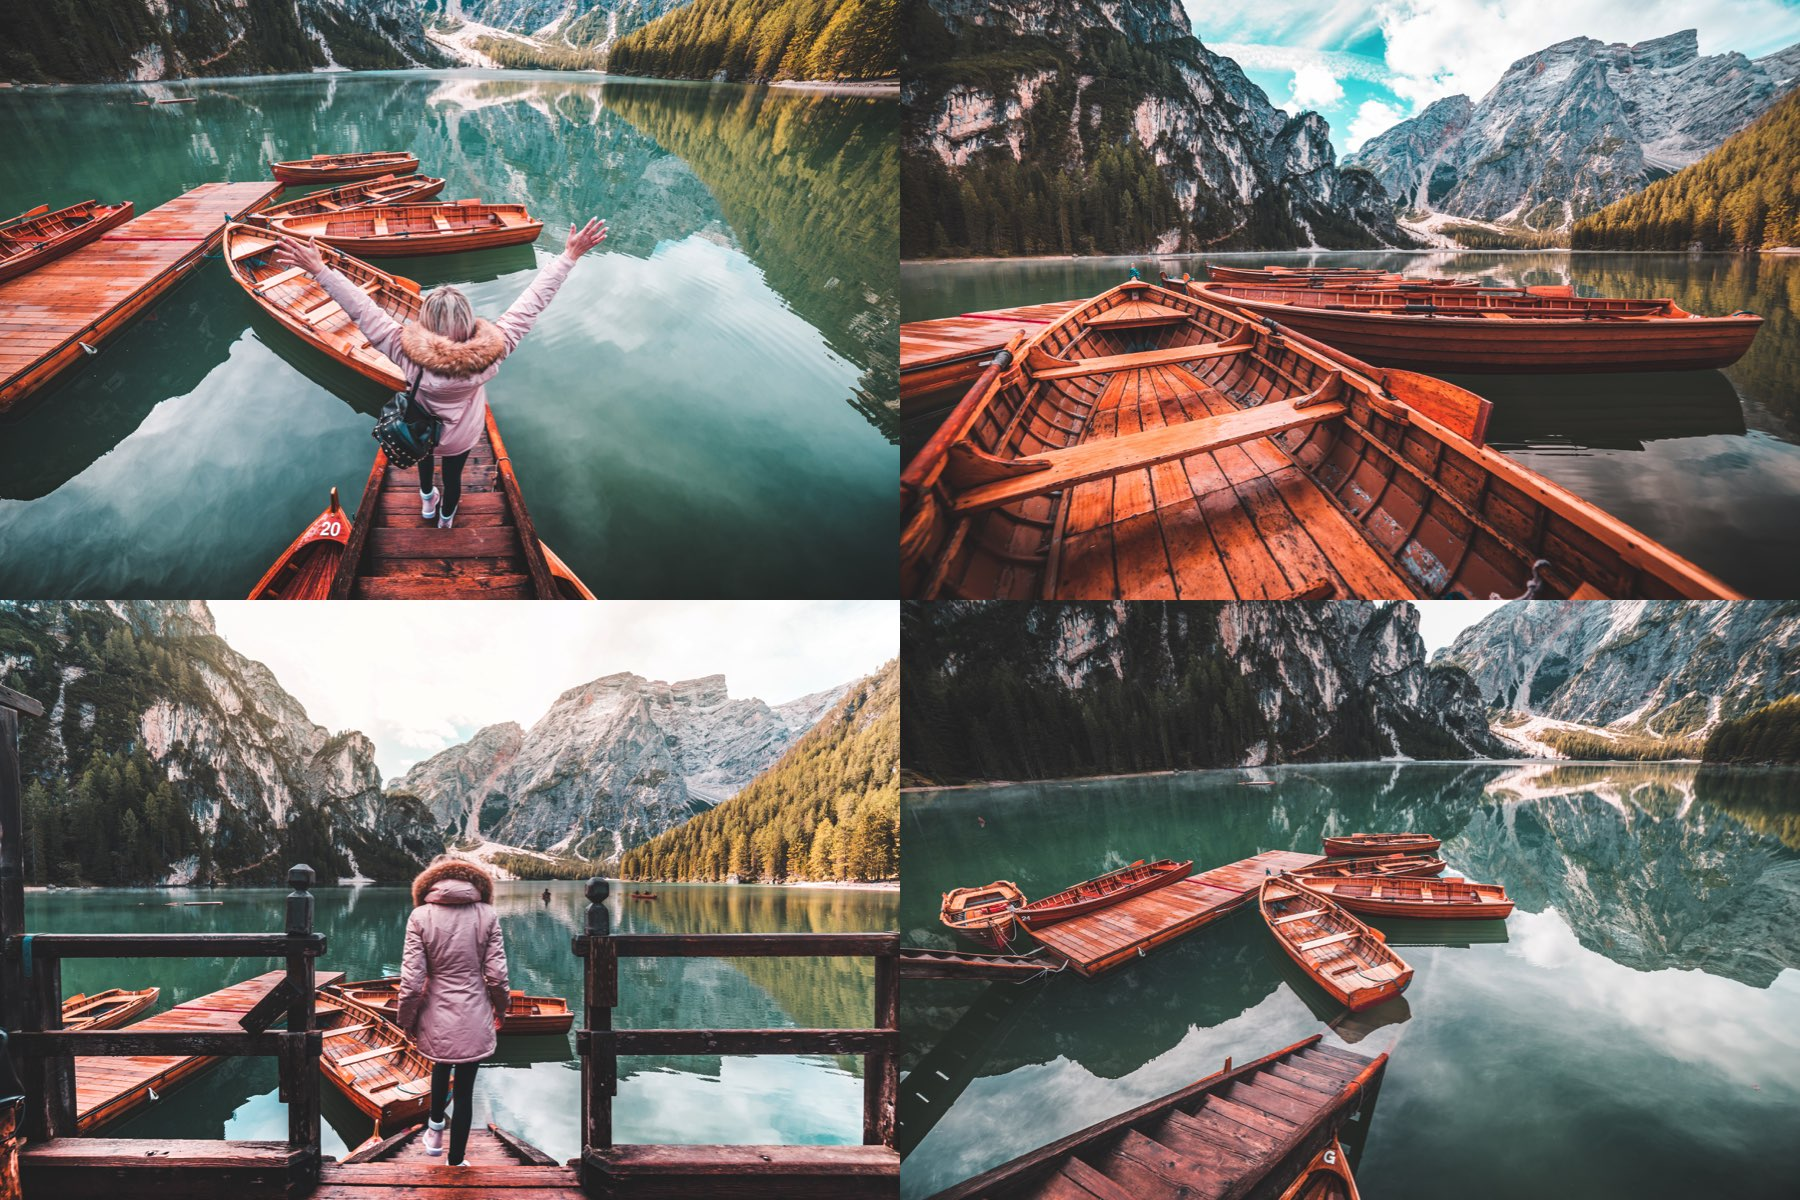 lago-di-braies-preview-2